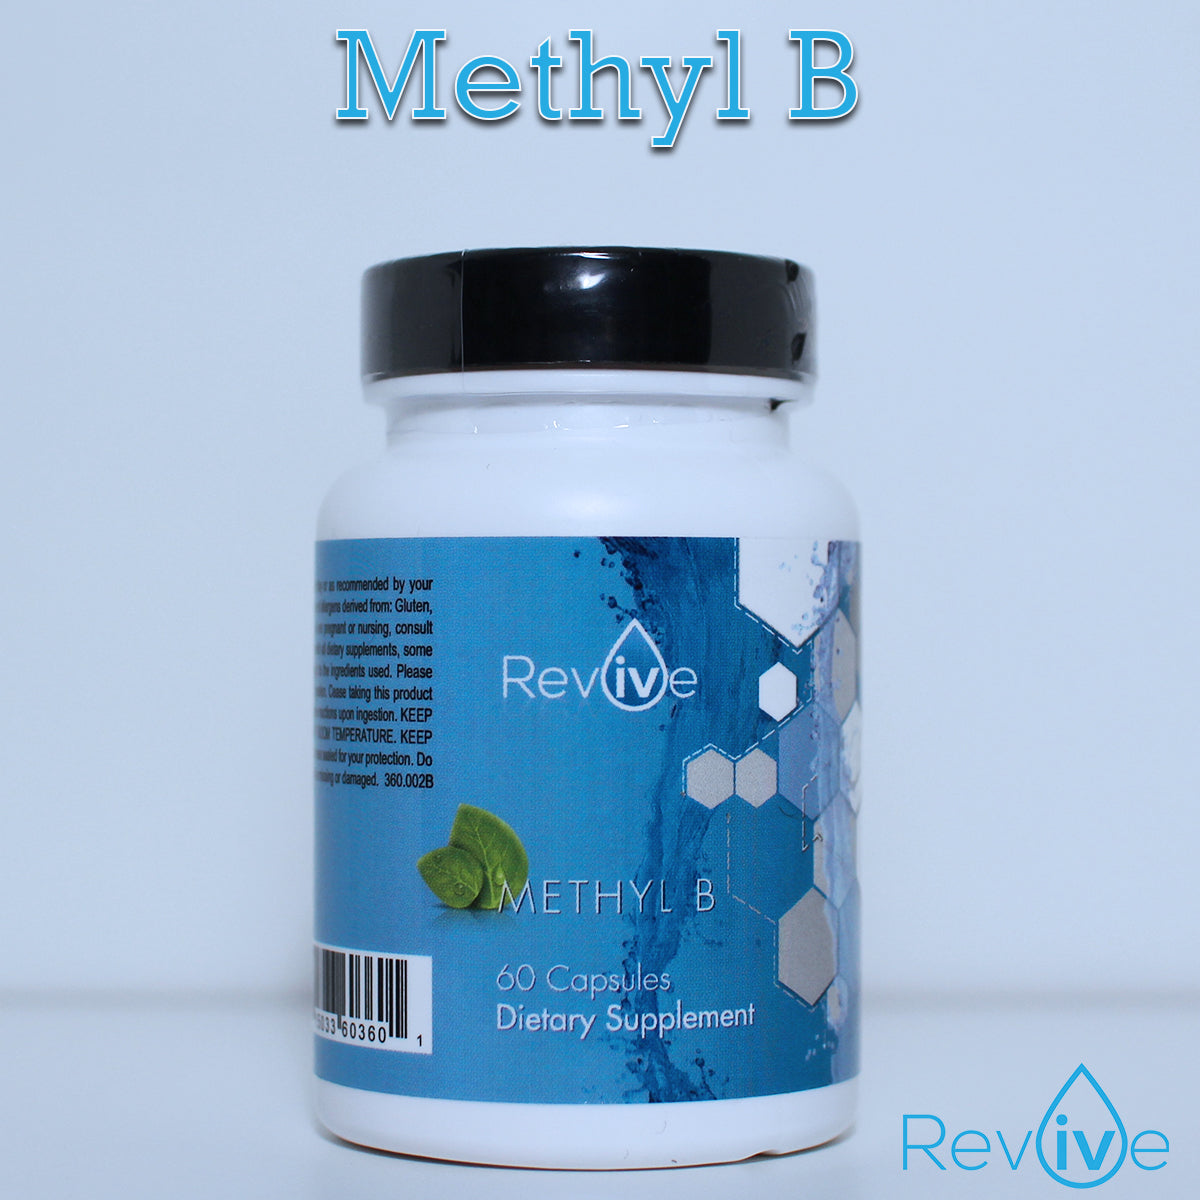 5a - Methyl B - Revive IV Loung & Pro Performance US - Best USA Supplements, FDA Approved